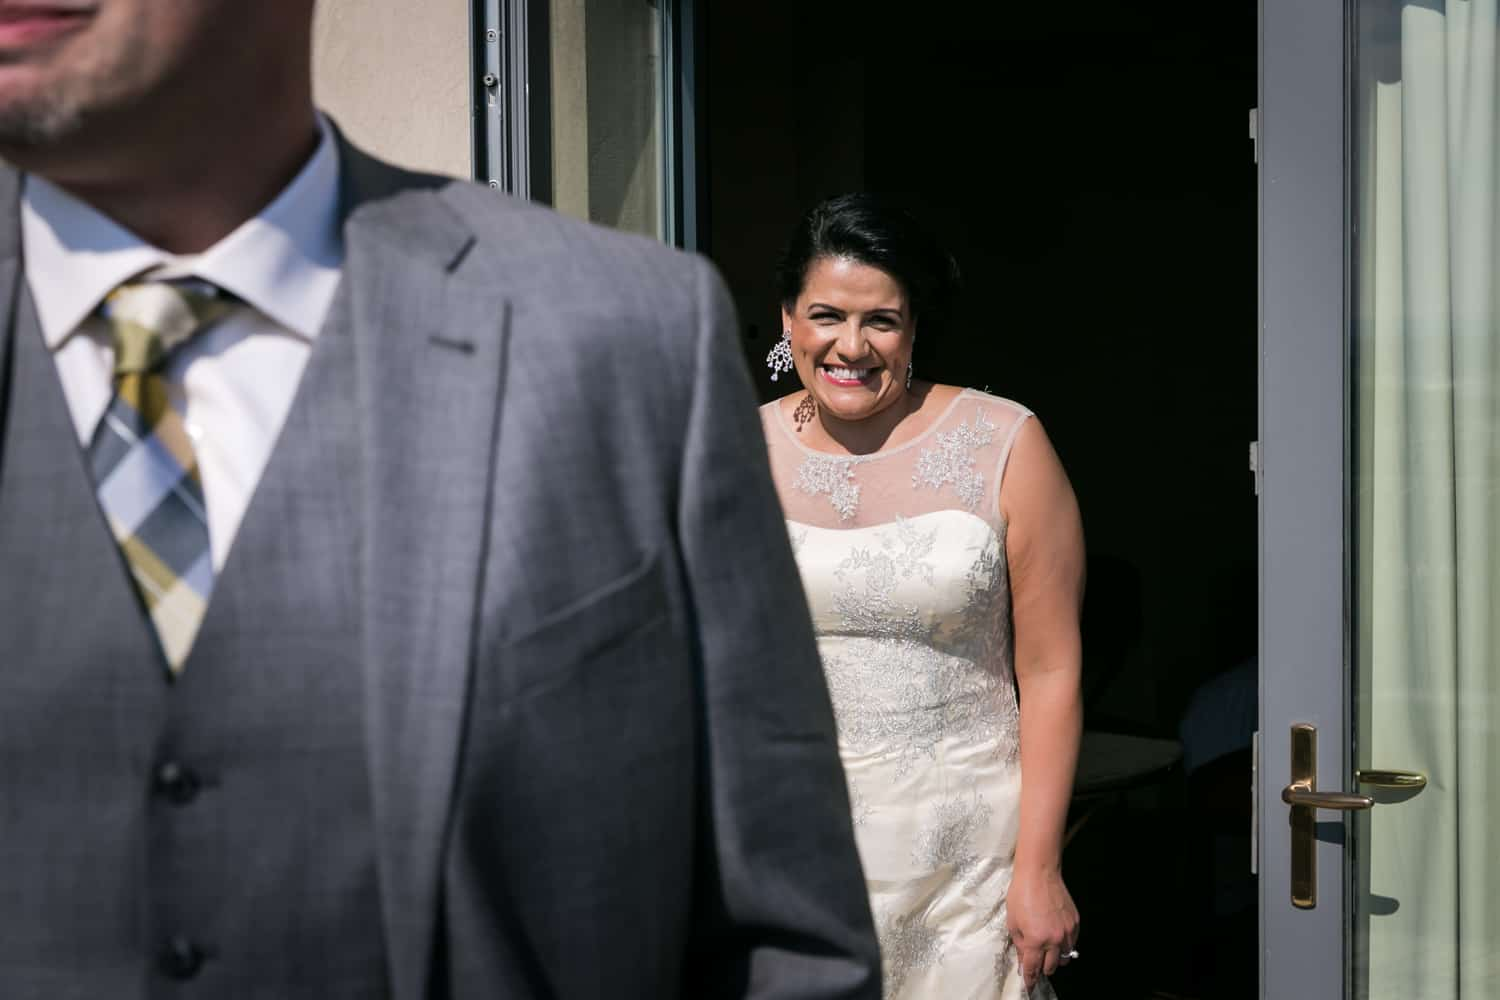 Bride sneaking up on groom before first look